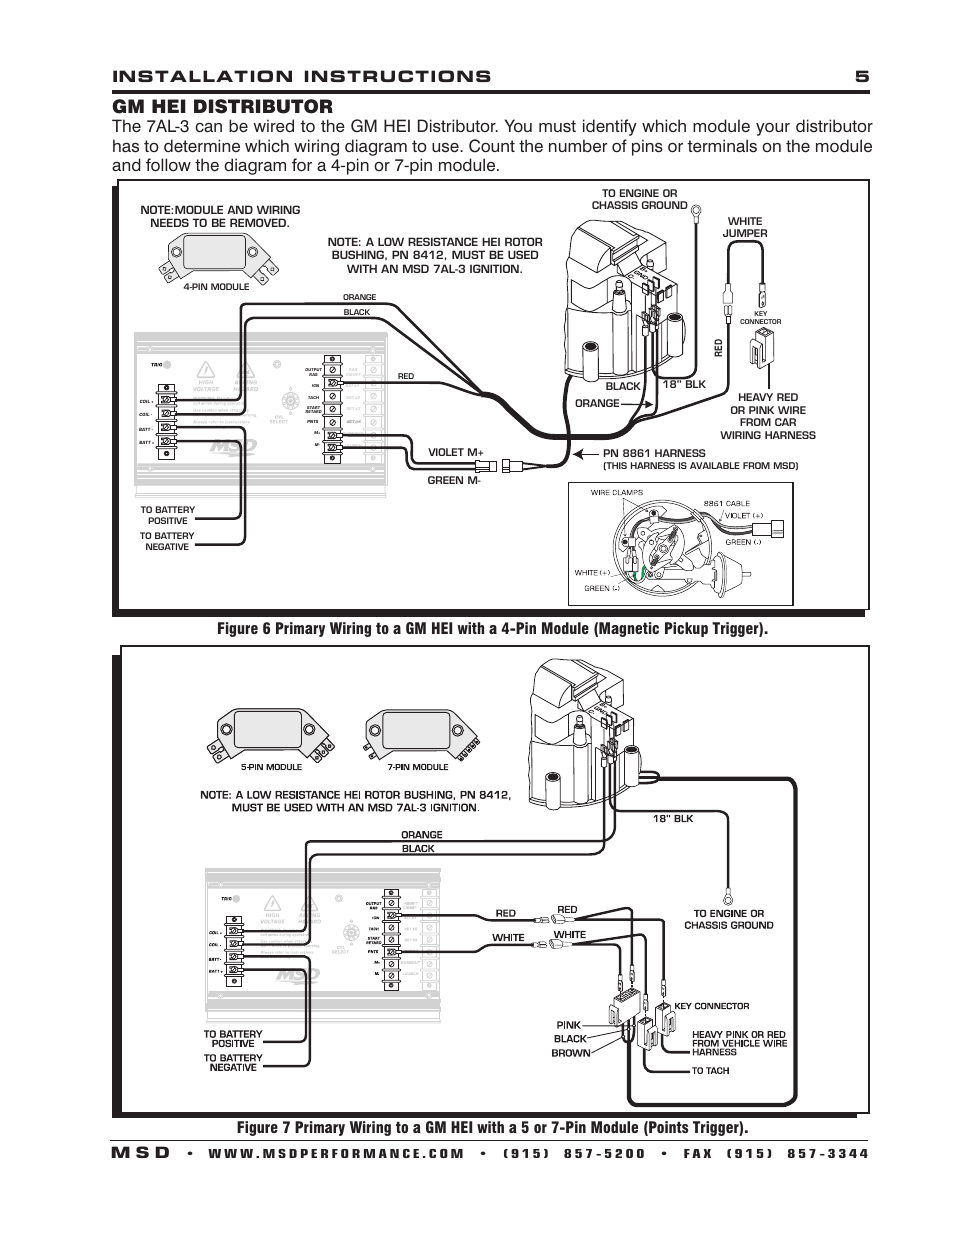 msd 7330 7al 3 ignition control installation page5?resize\\\=665%2C861 crane hi 4 wiring diagram revtech 100 diagram, badlands Simple Chopper Wiring Diagram Ignition at gsmx.co